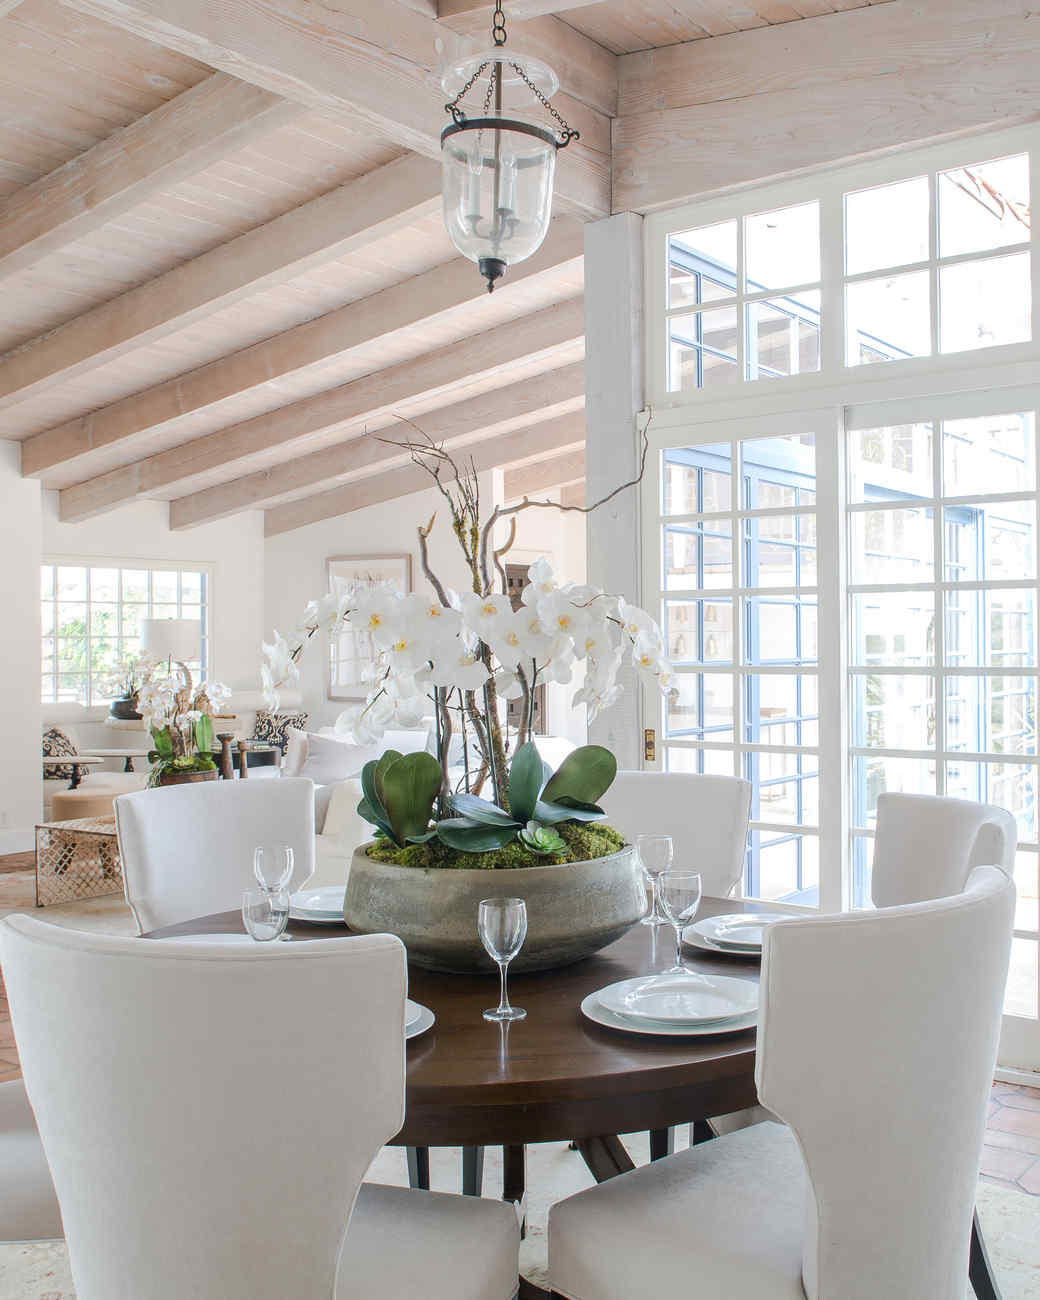 Dining Room Decoration: Feast Your Eyes: Gorgeous Dining Room Decorating Ideas